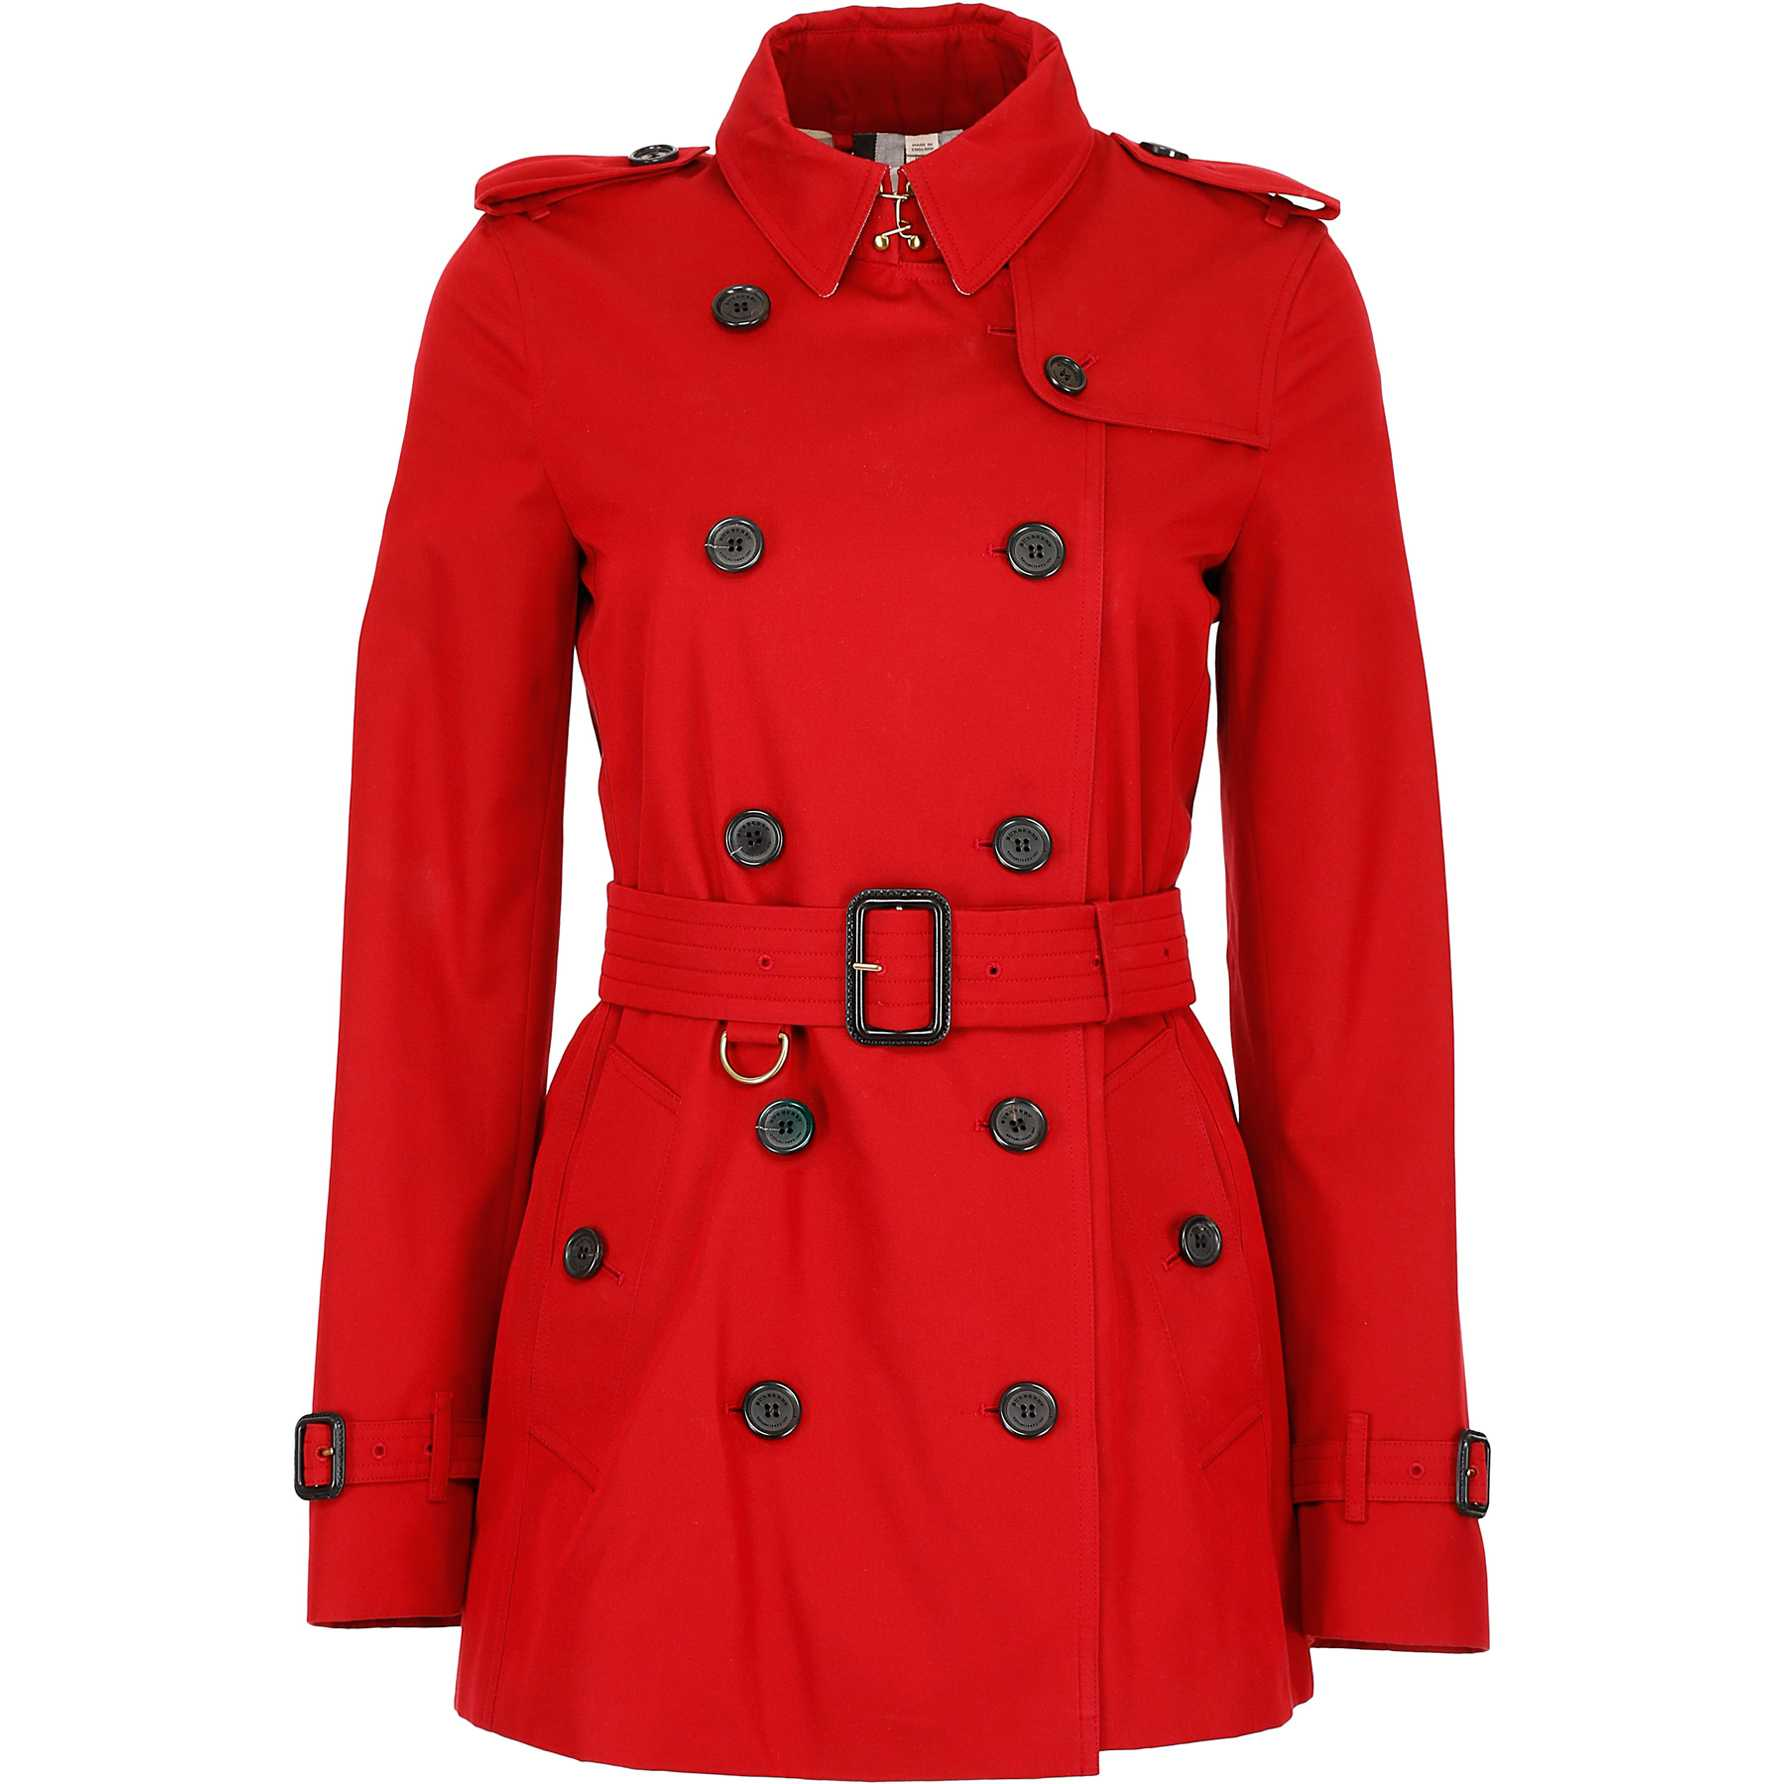 Burberry Short Kensington Trench Coat PARADE RED pentru dama